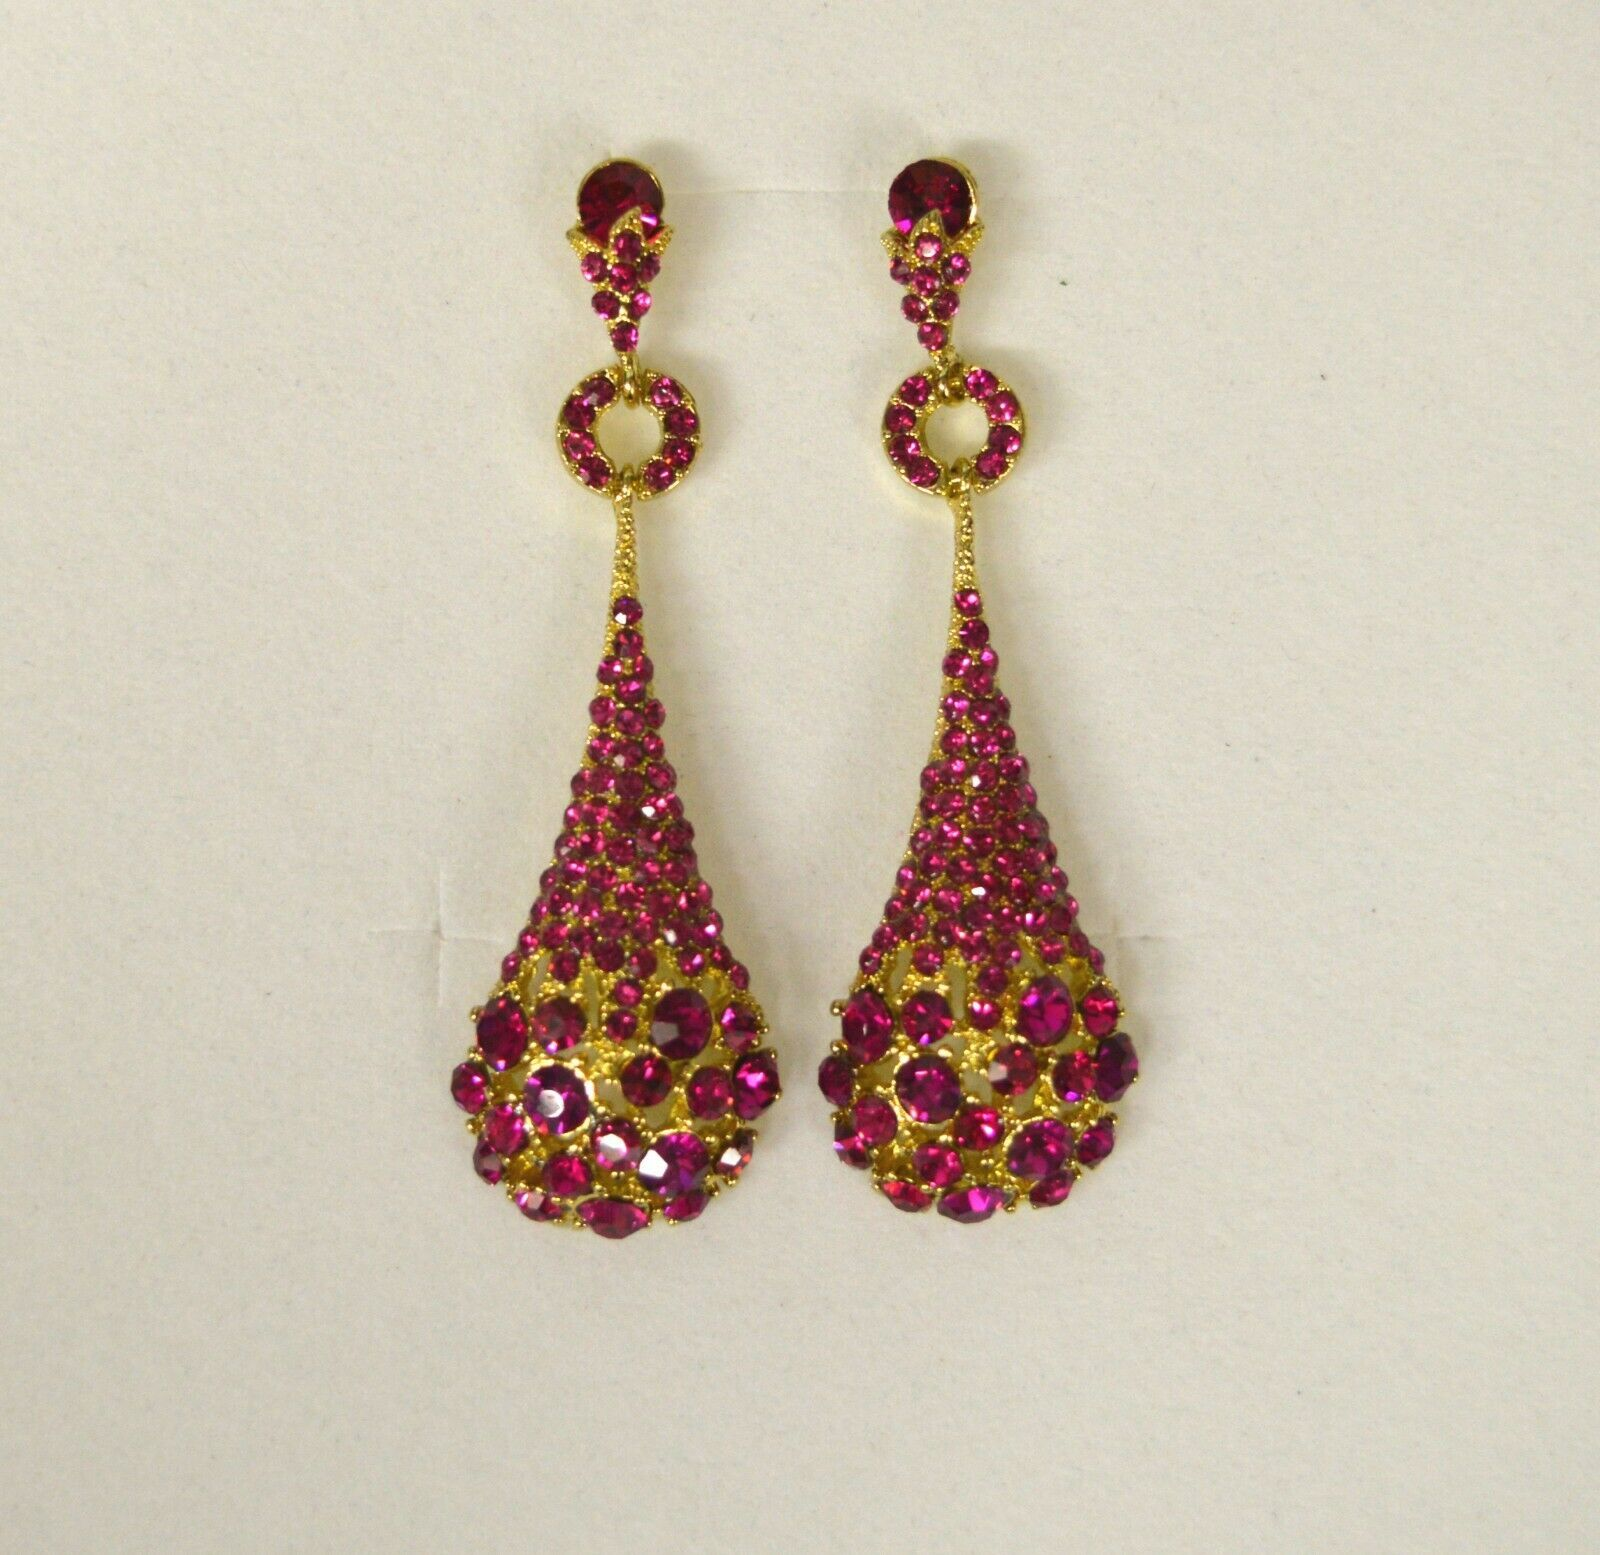 Primary image for STATEMENT GLAM SEXY FAUX CRYSTAL RHINESTONE JEWEL DROP DANGLE EARRINGS PINK